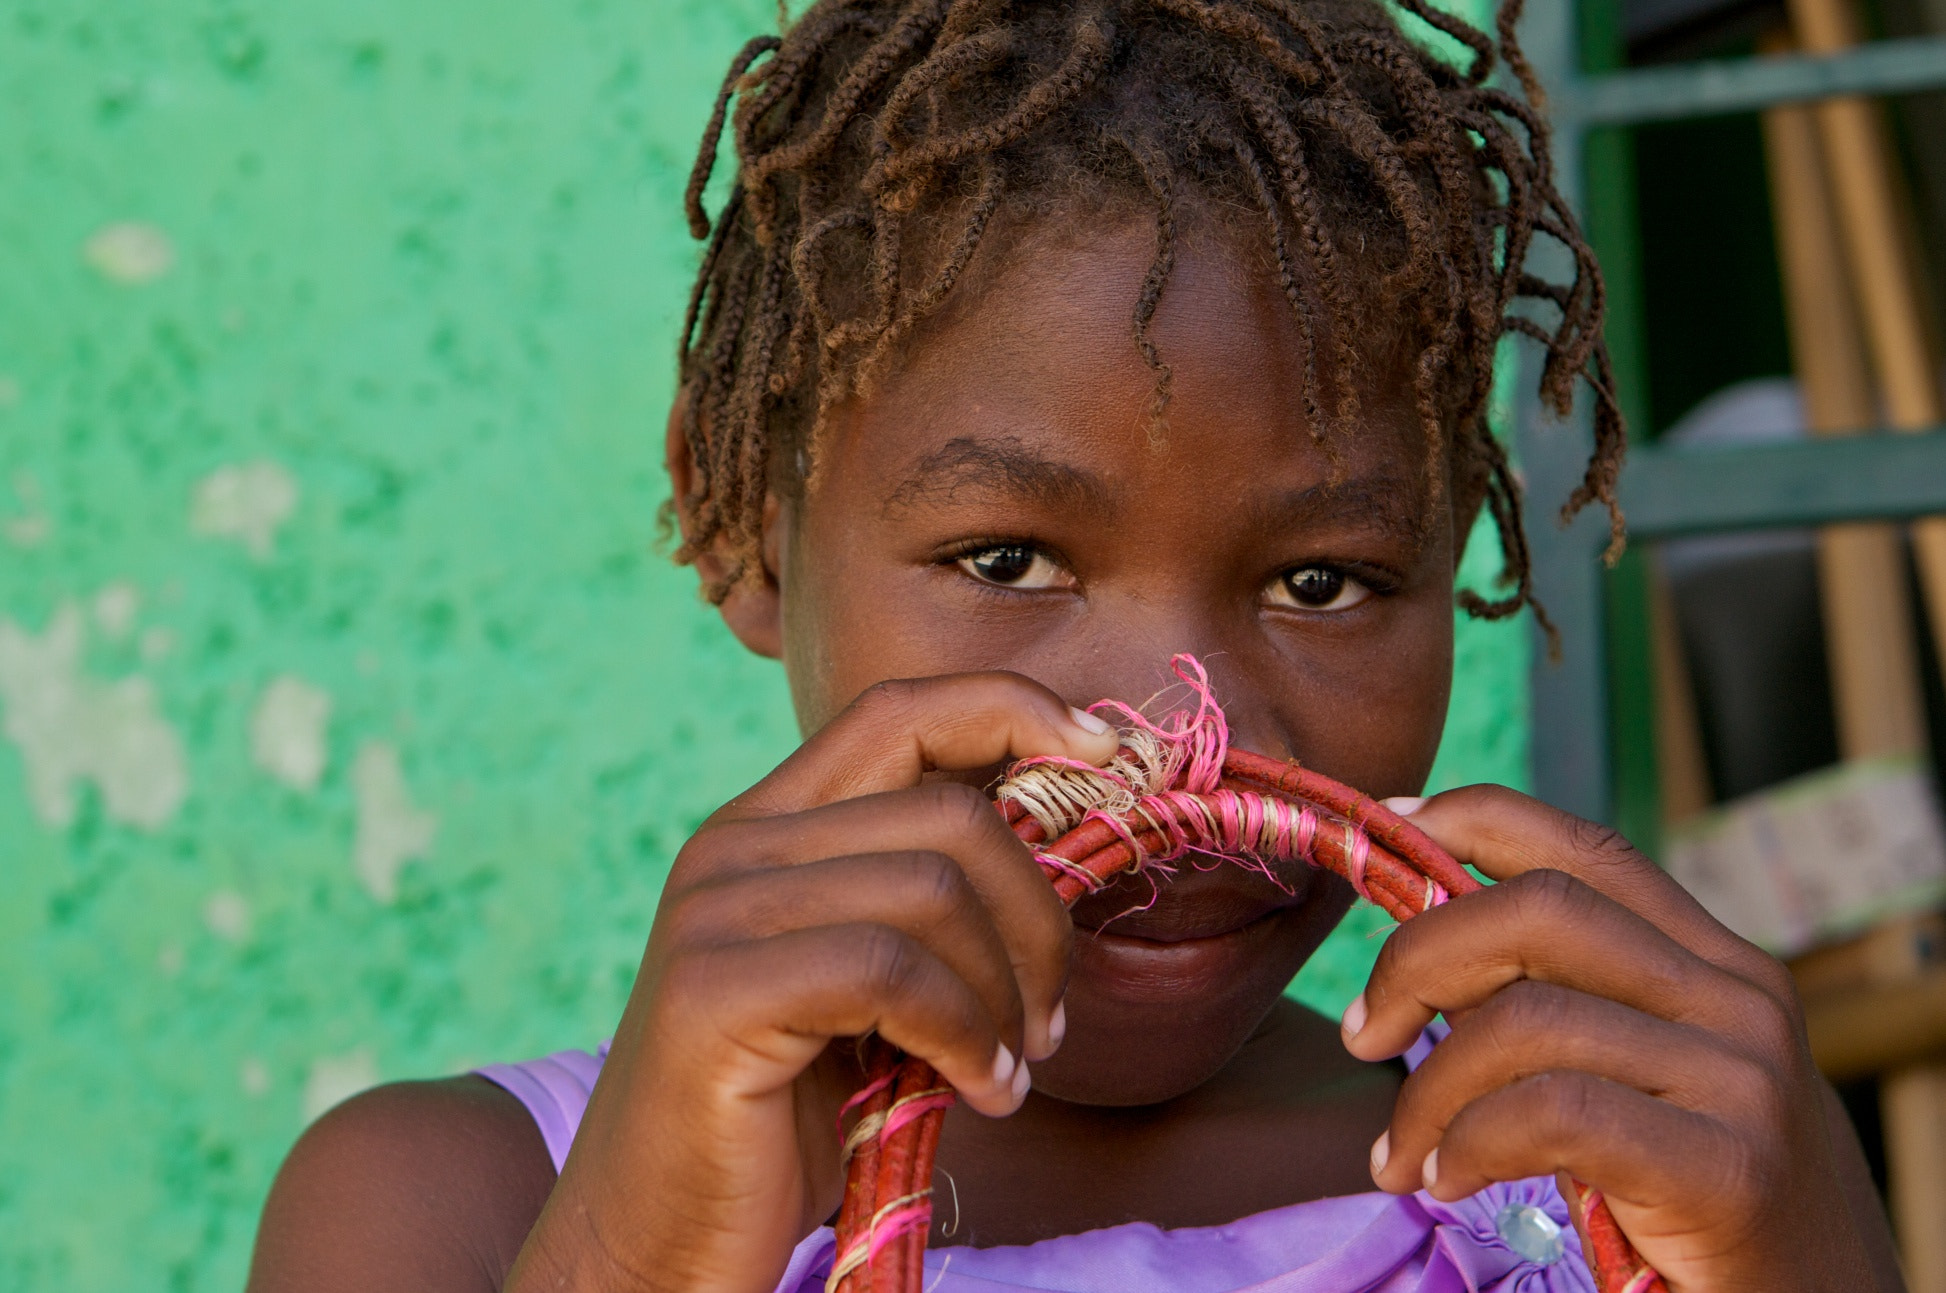 Photograph Haitian Girl by Travis Brown on 500px